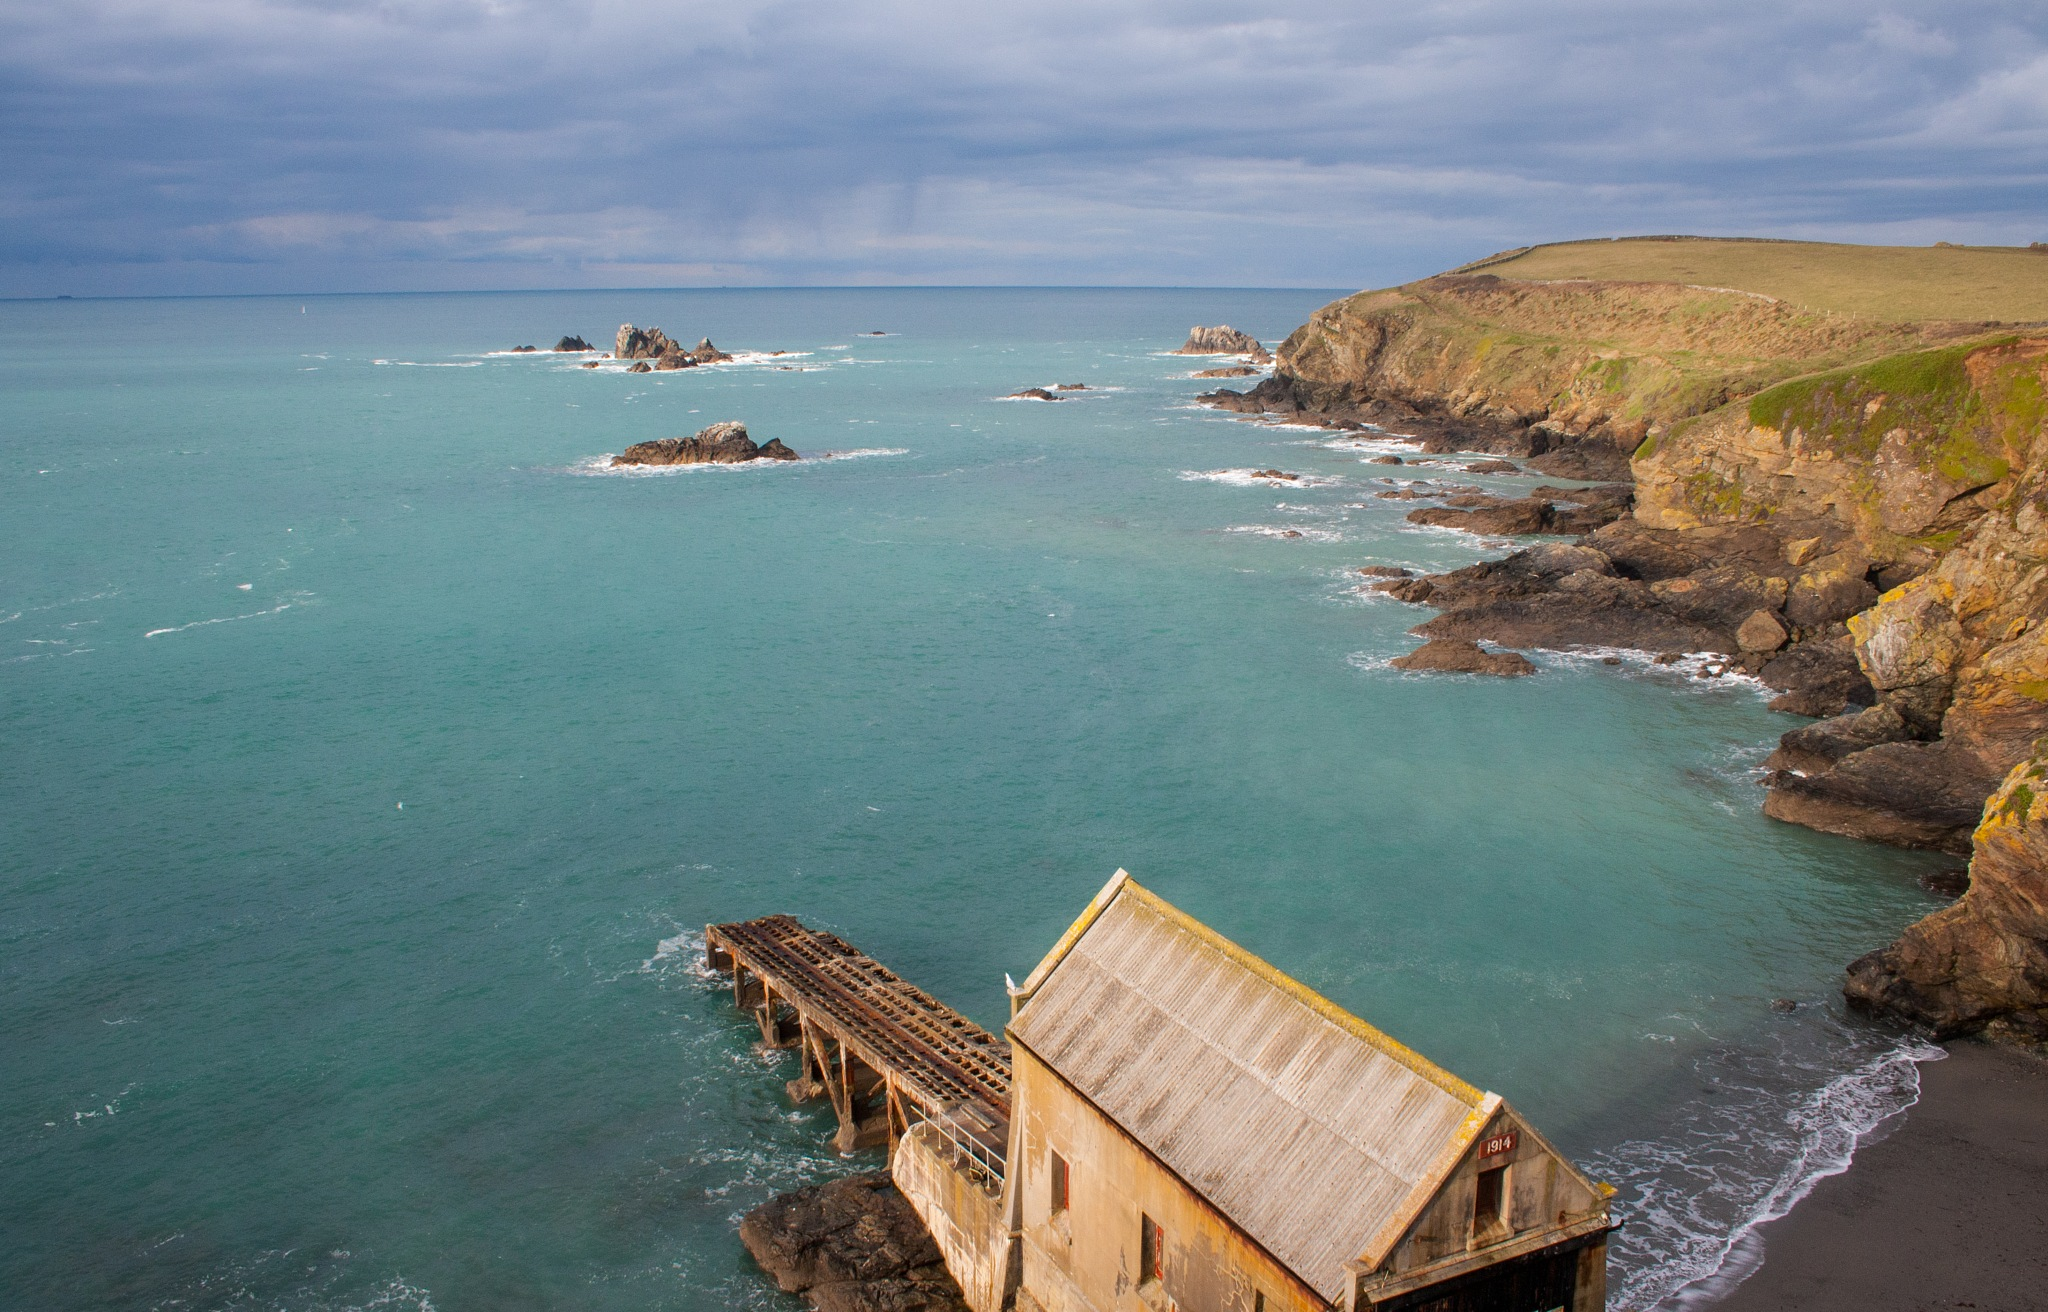 The Old Lifeboat House by Steve Rowe